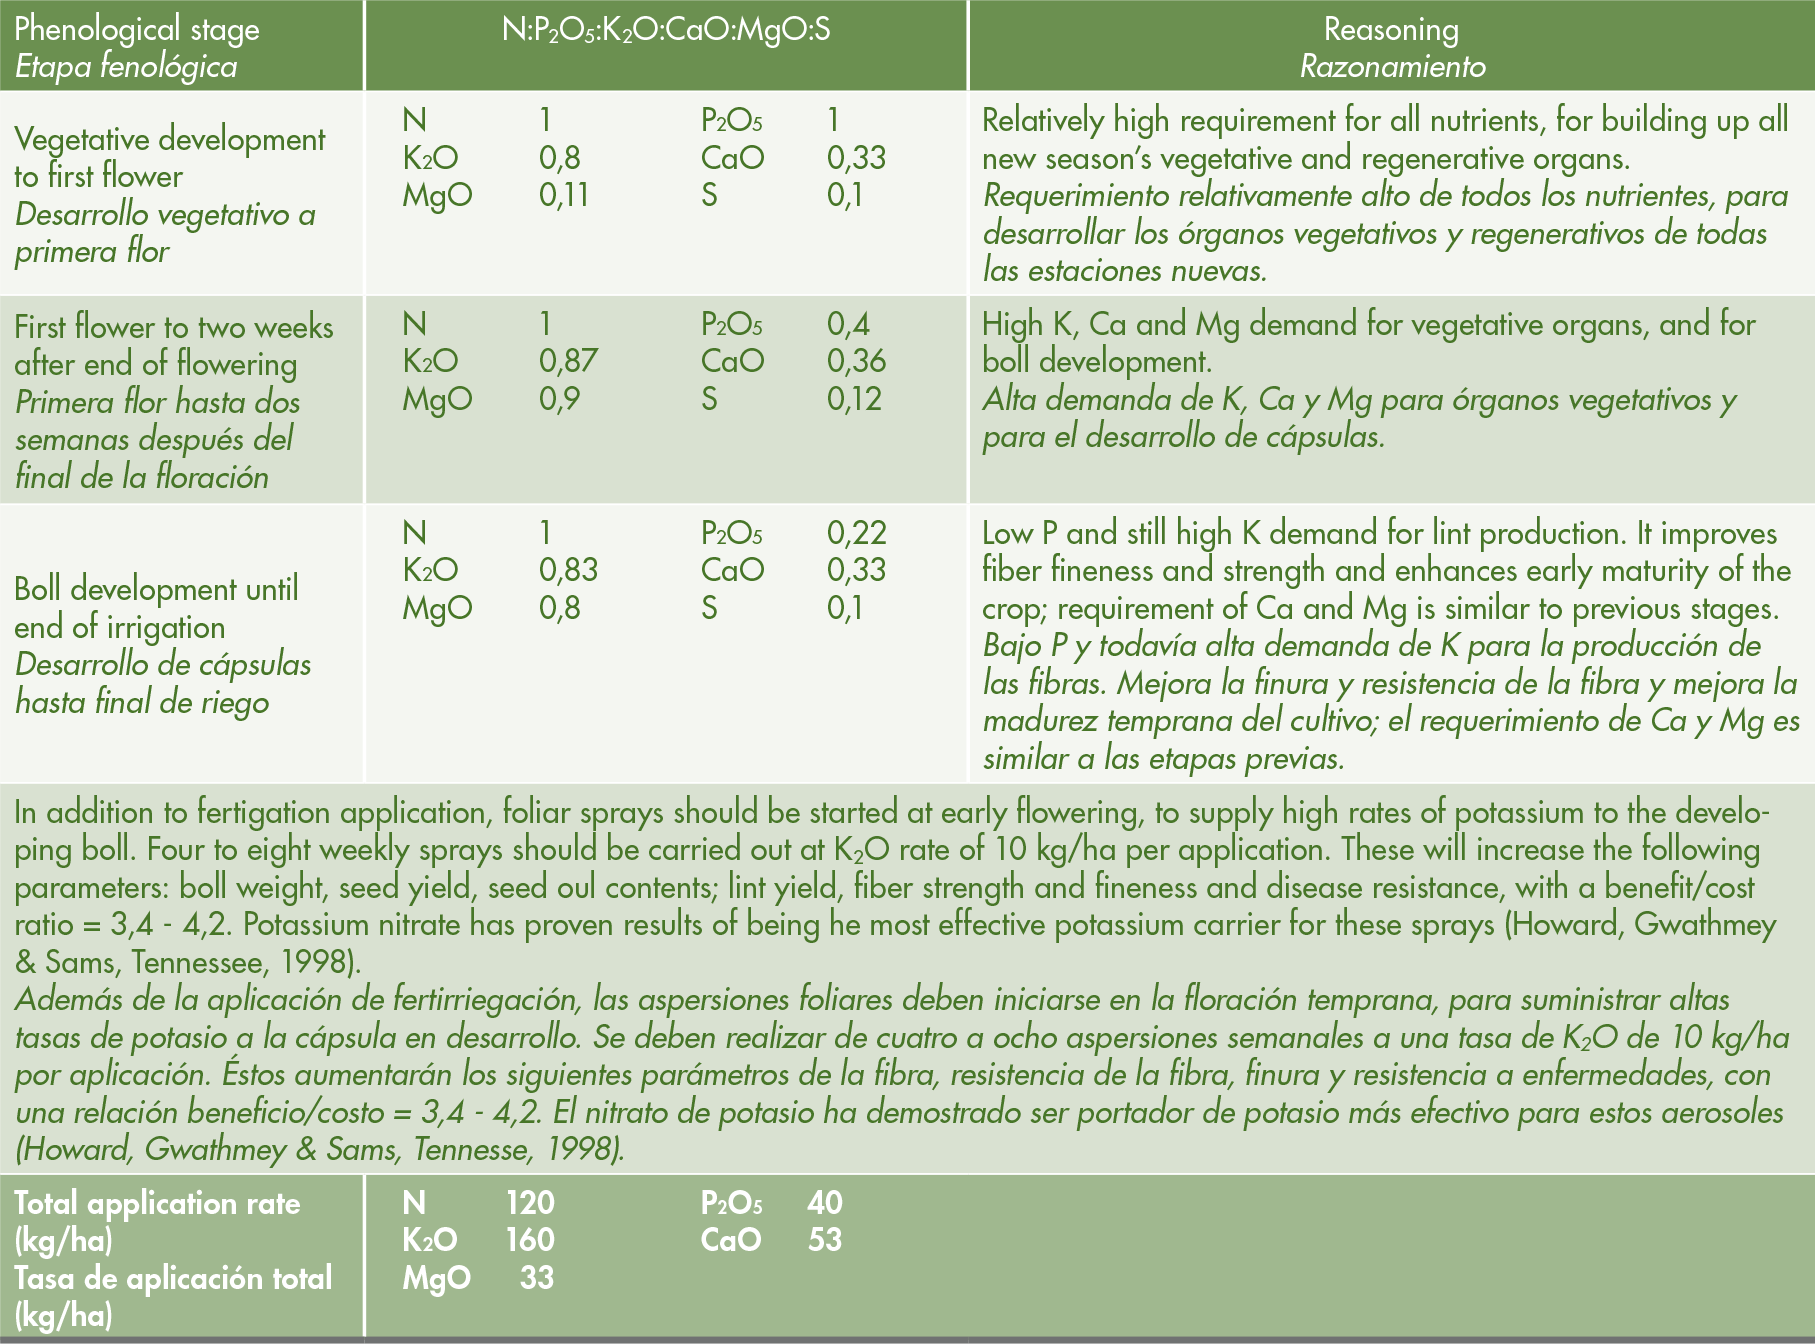 Recommended N-P-K-Ca-Mg ratios, applied by fertigation via drip irrigation, across main growth stages of cotton plants, with an expected yield of 6.2 MT/ha. This fertigation regime leans on heavy pre-planting base dressing of: N= 86 kg/ha; P<sub>2</sub>O<sub>5</sub>= 75 kg/ha; K<sub>2</sub>O= 80 kg/ha.